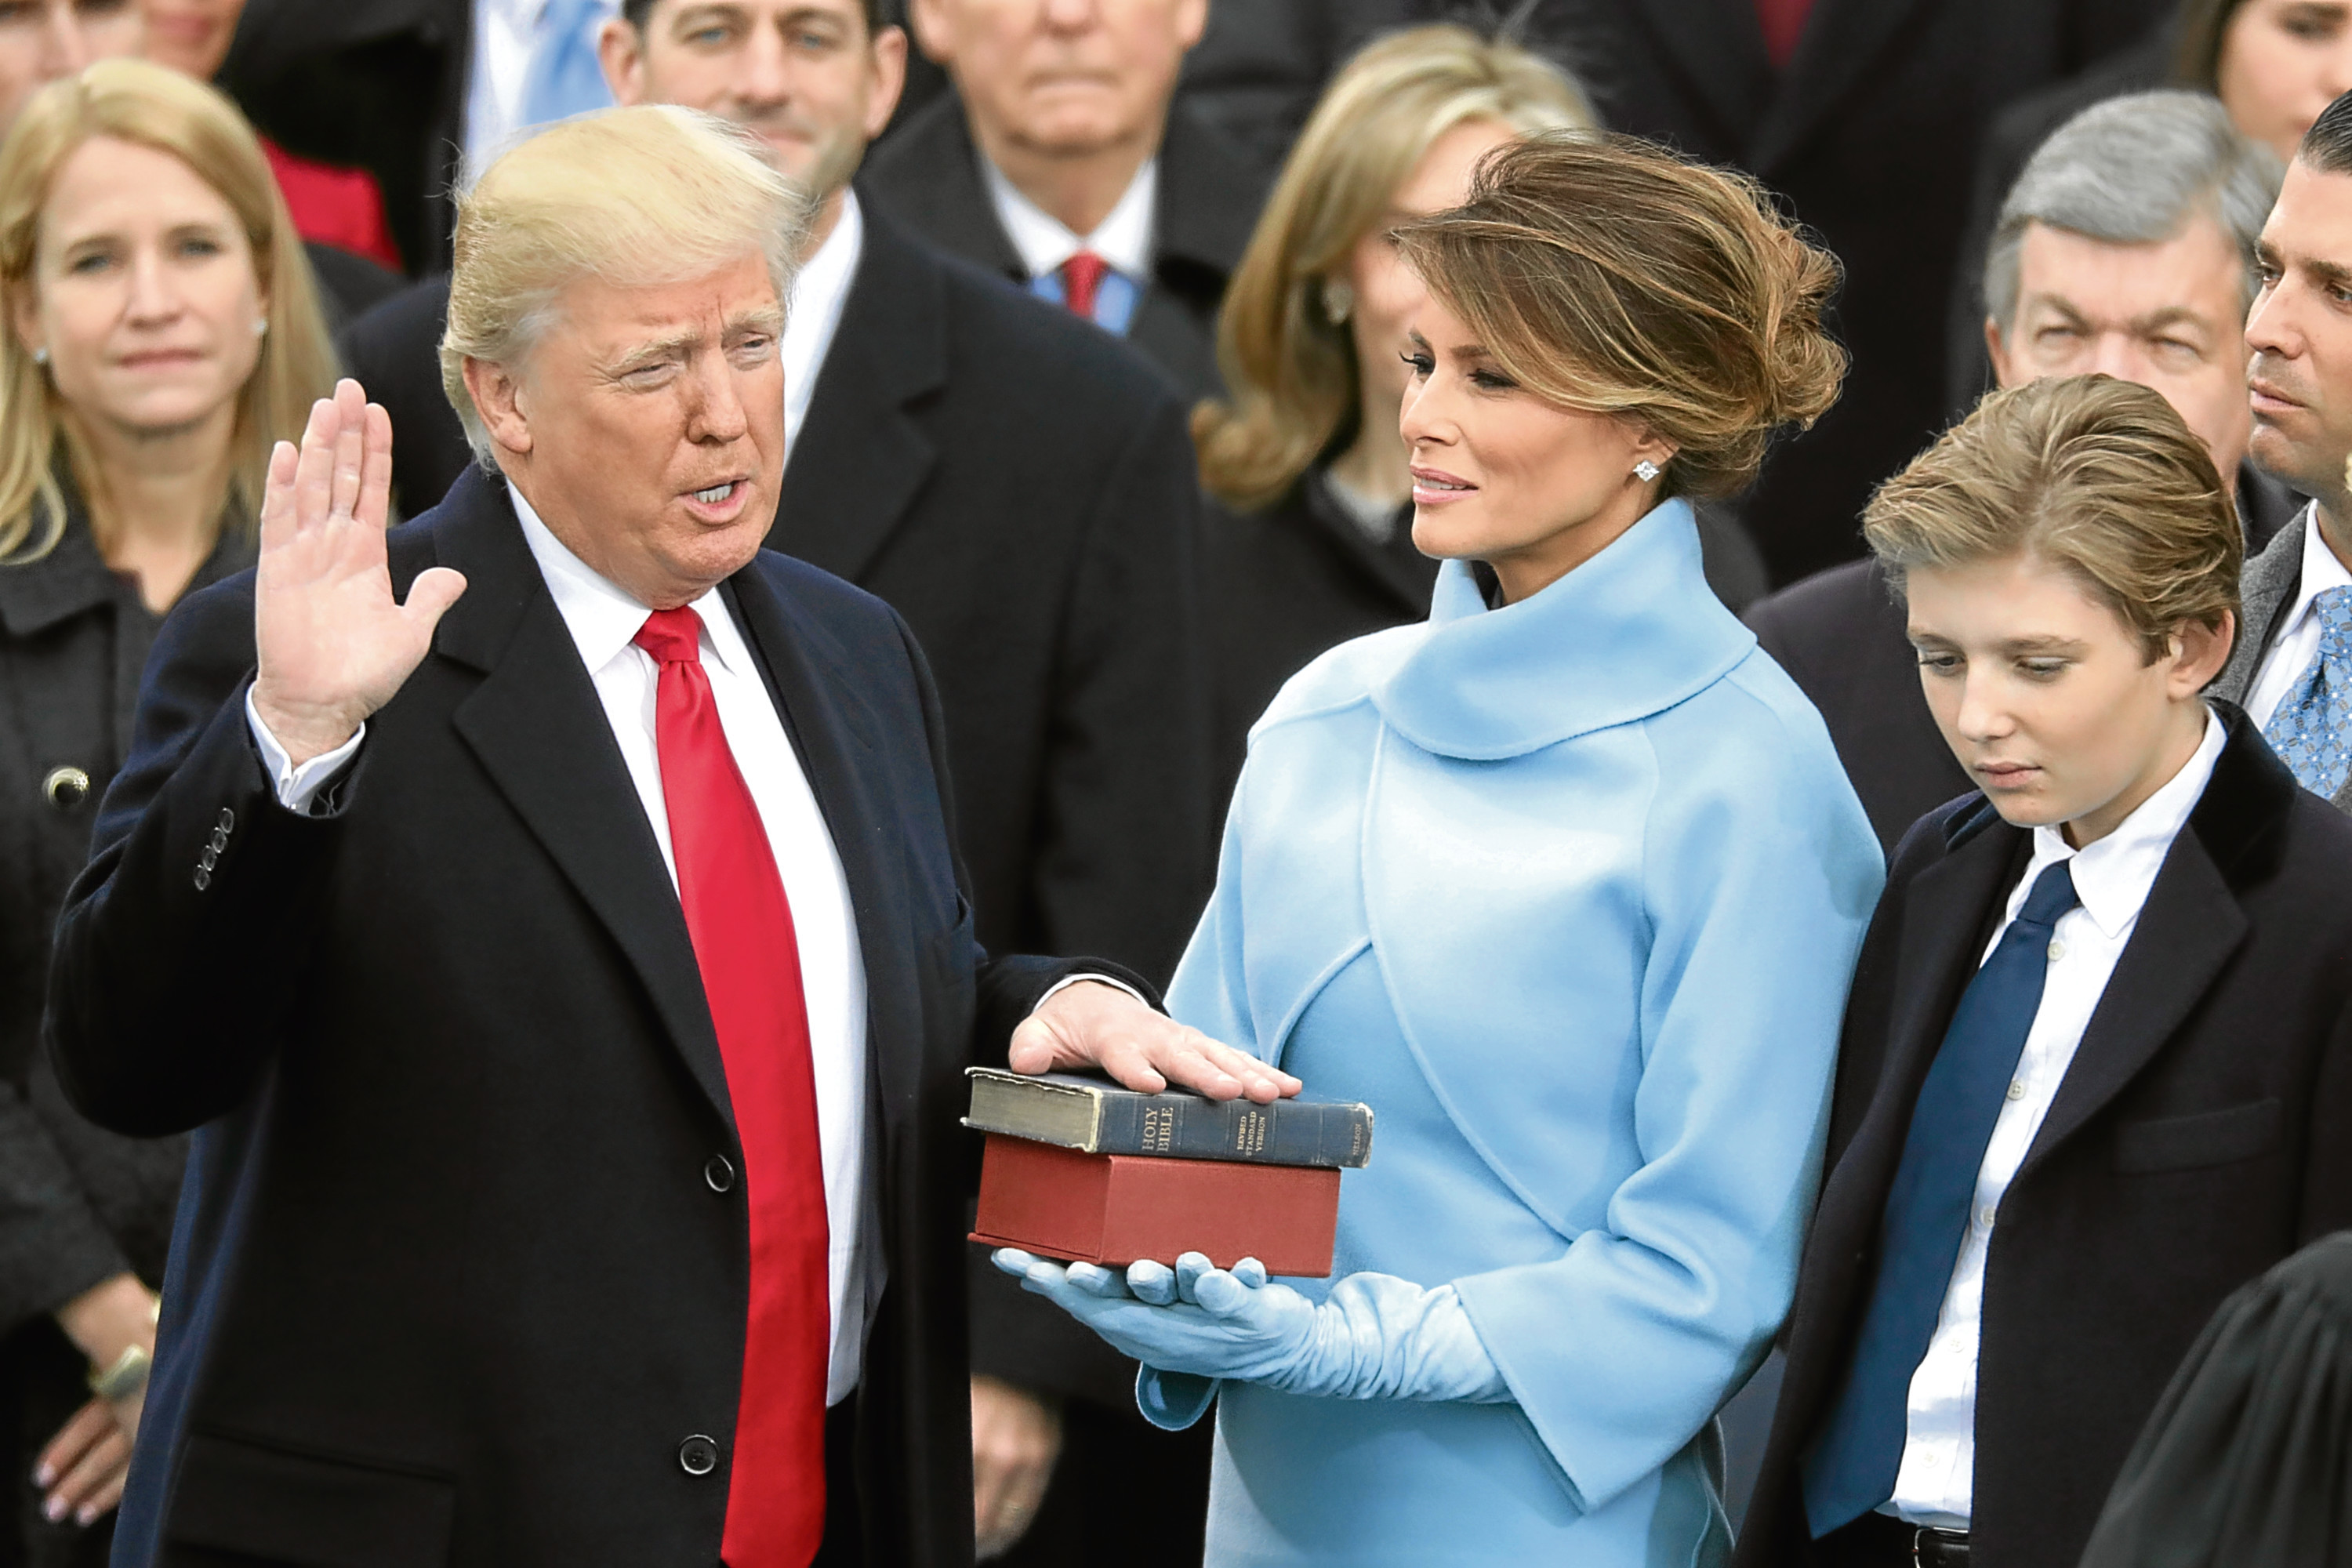 U.S. President Donald Trump takes the oath of office (Chip Somodevilla/Getty Images)